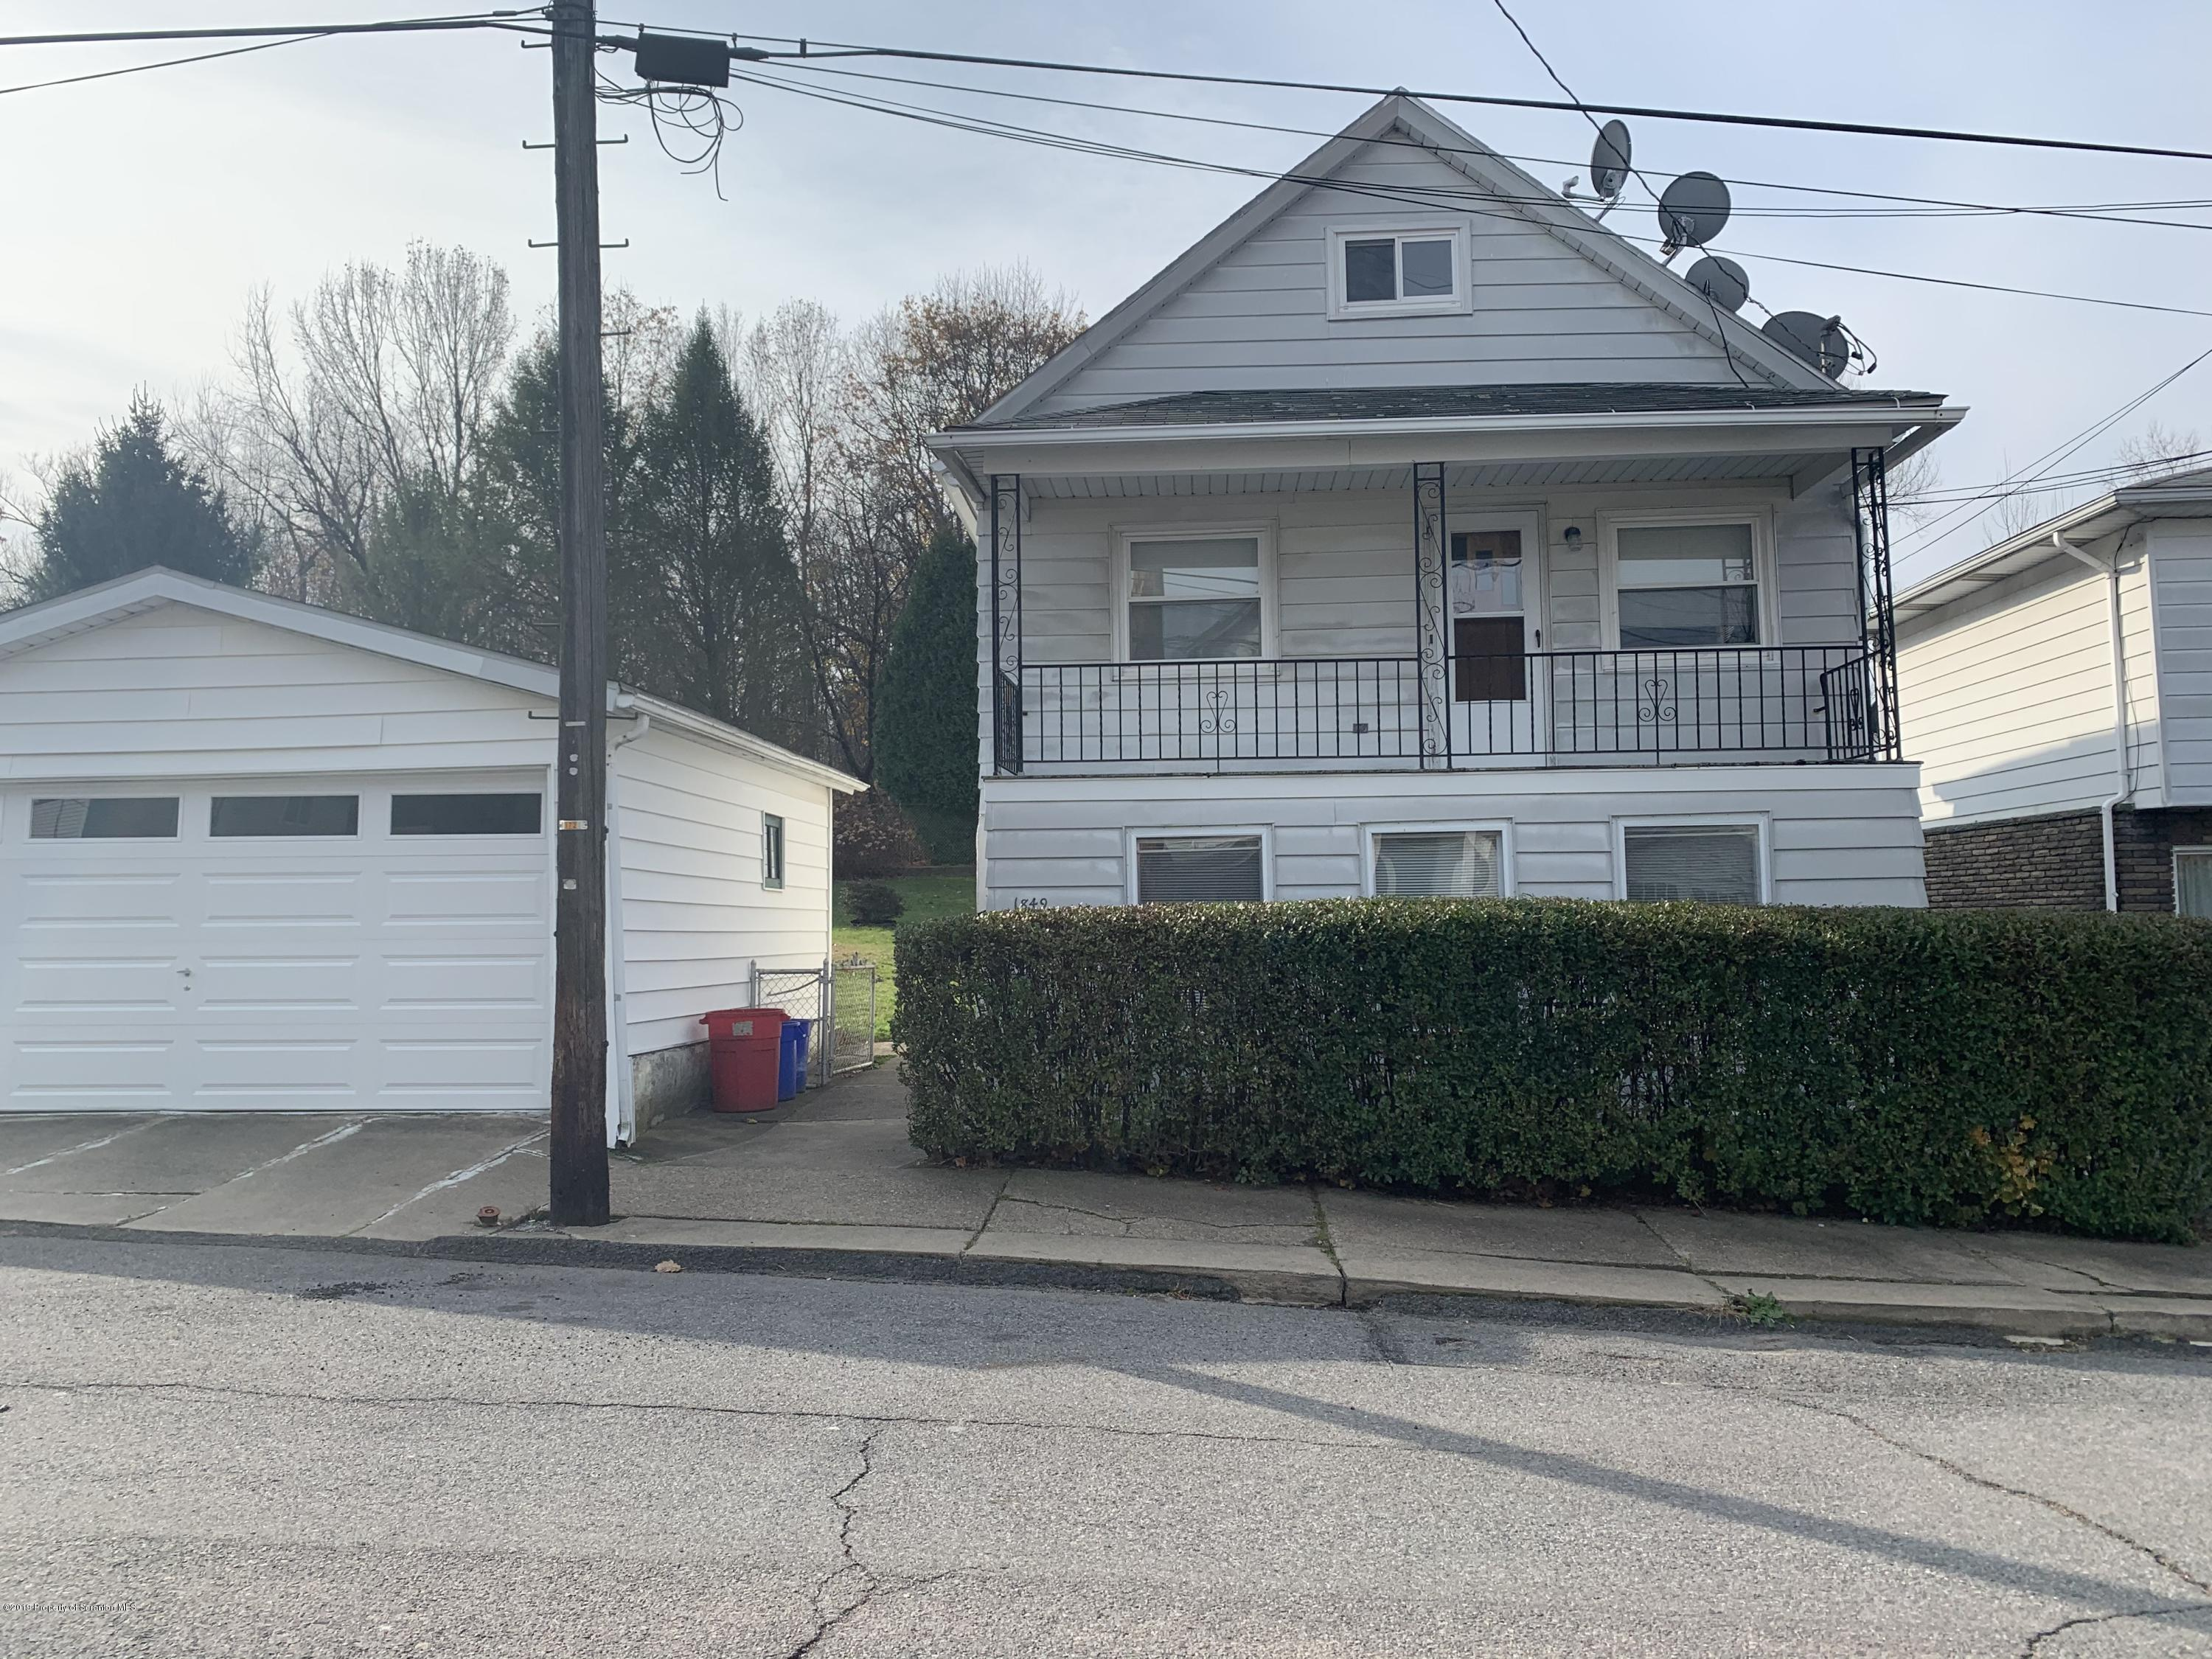 1849 Clearview St, Scranton, Pennsylvania 18508, 2 Bedrooms Bedrooms, 5 Rooms Rooms,1 BathroomBathrooms,Rental,For Lease,Clearview,19-5353